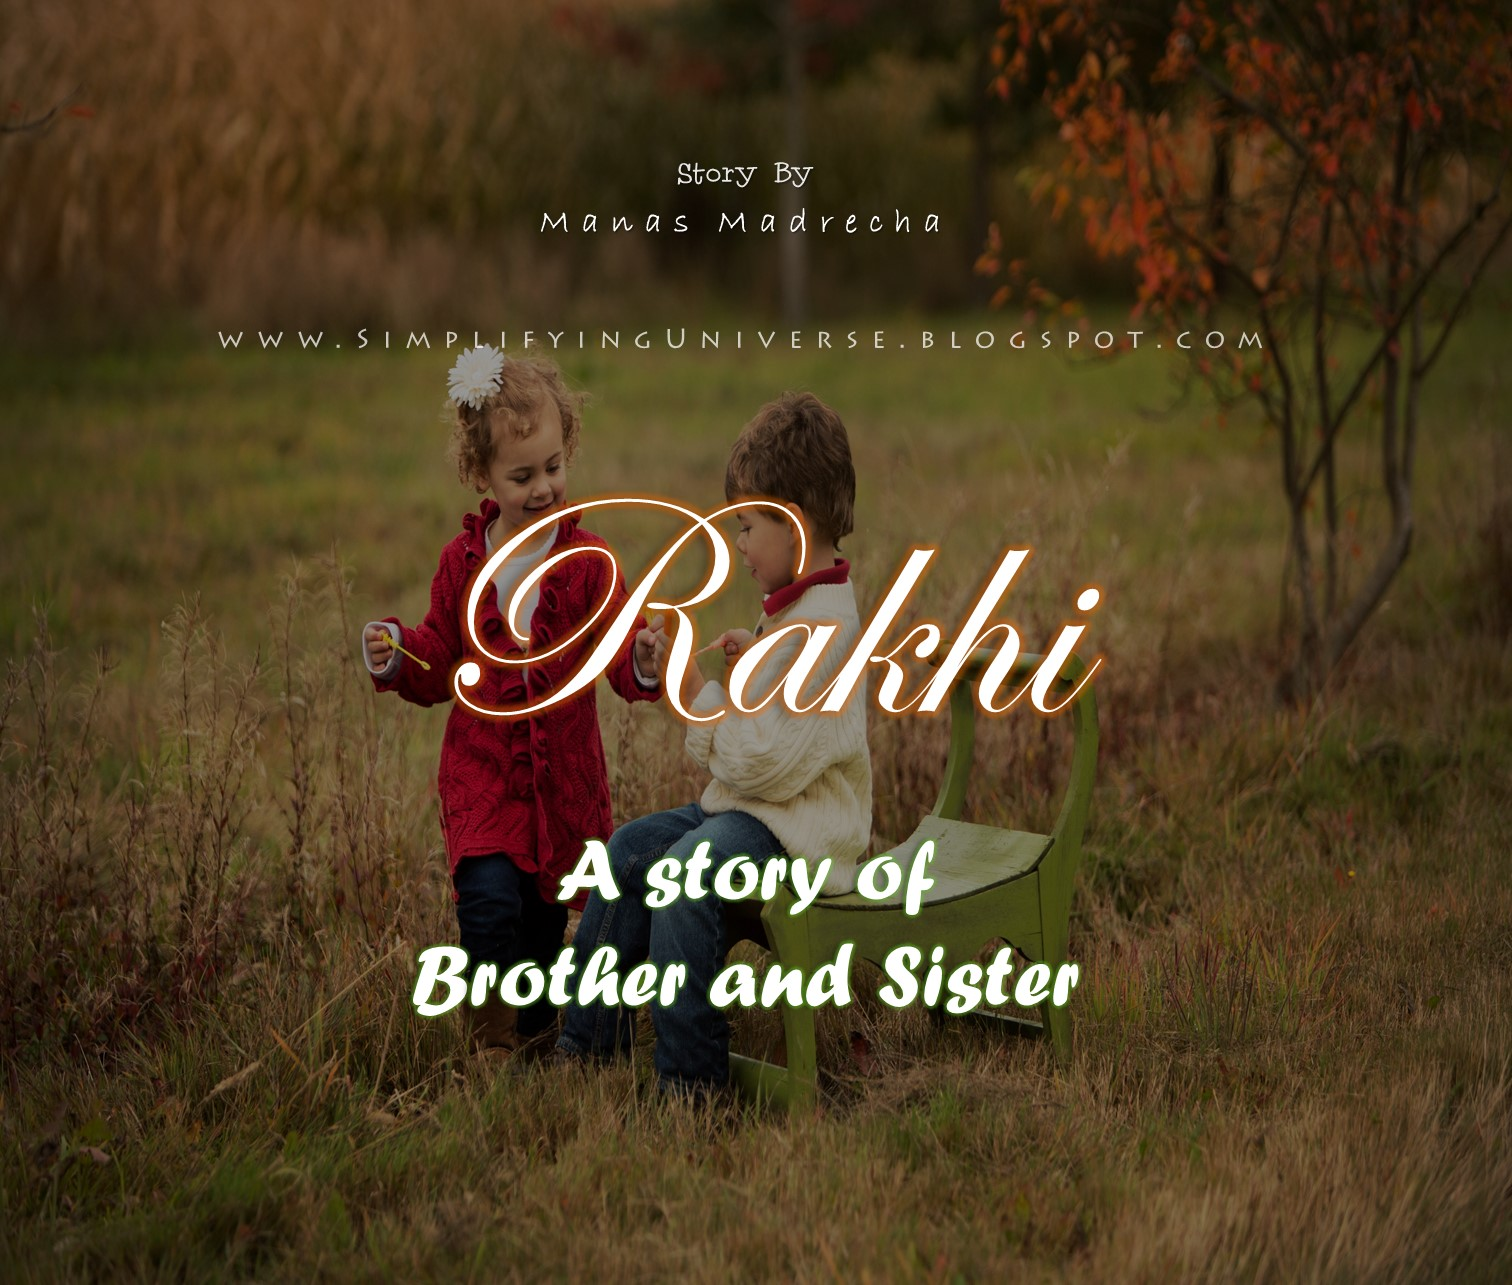 Brother And Sister Love Quotes Classy Rakhi  A Story Of Brother And Sister  Manas Madrecha